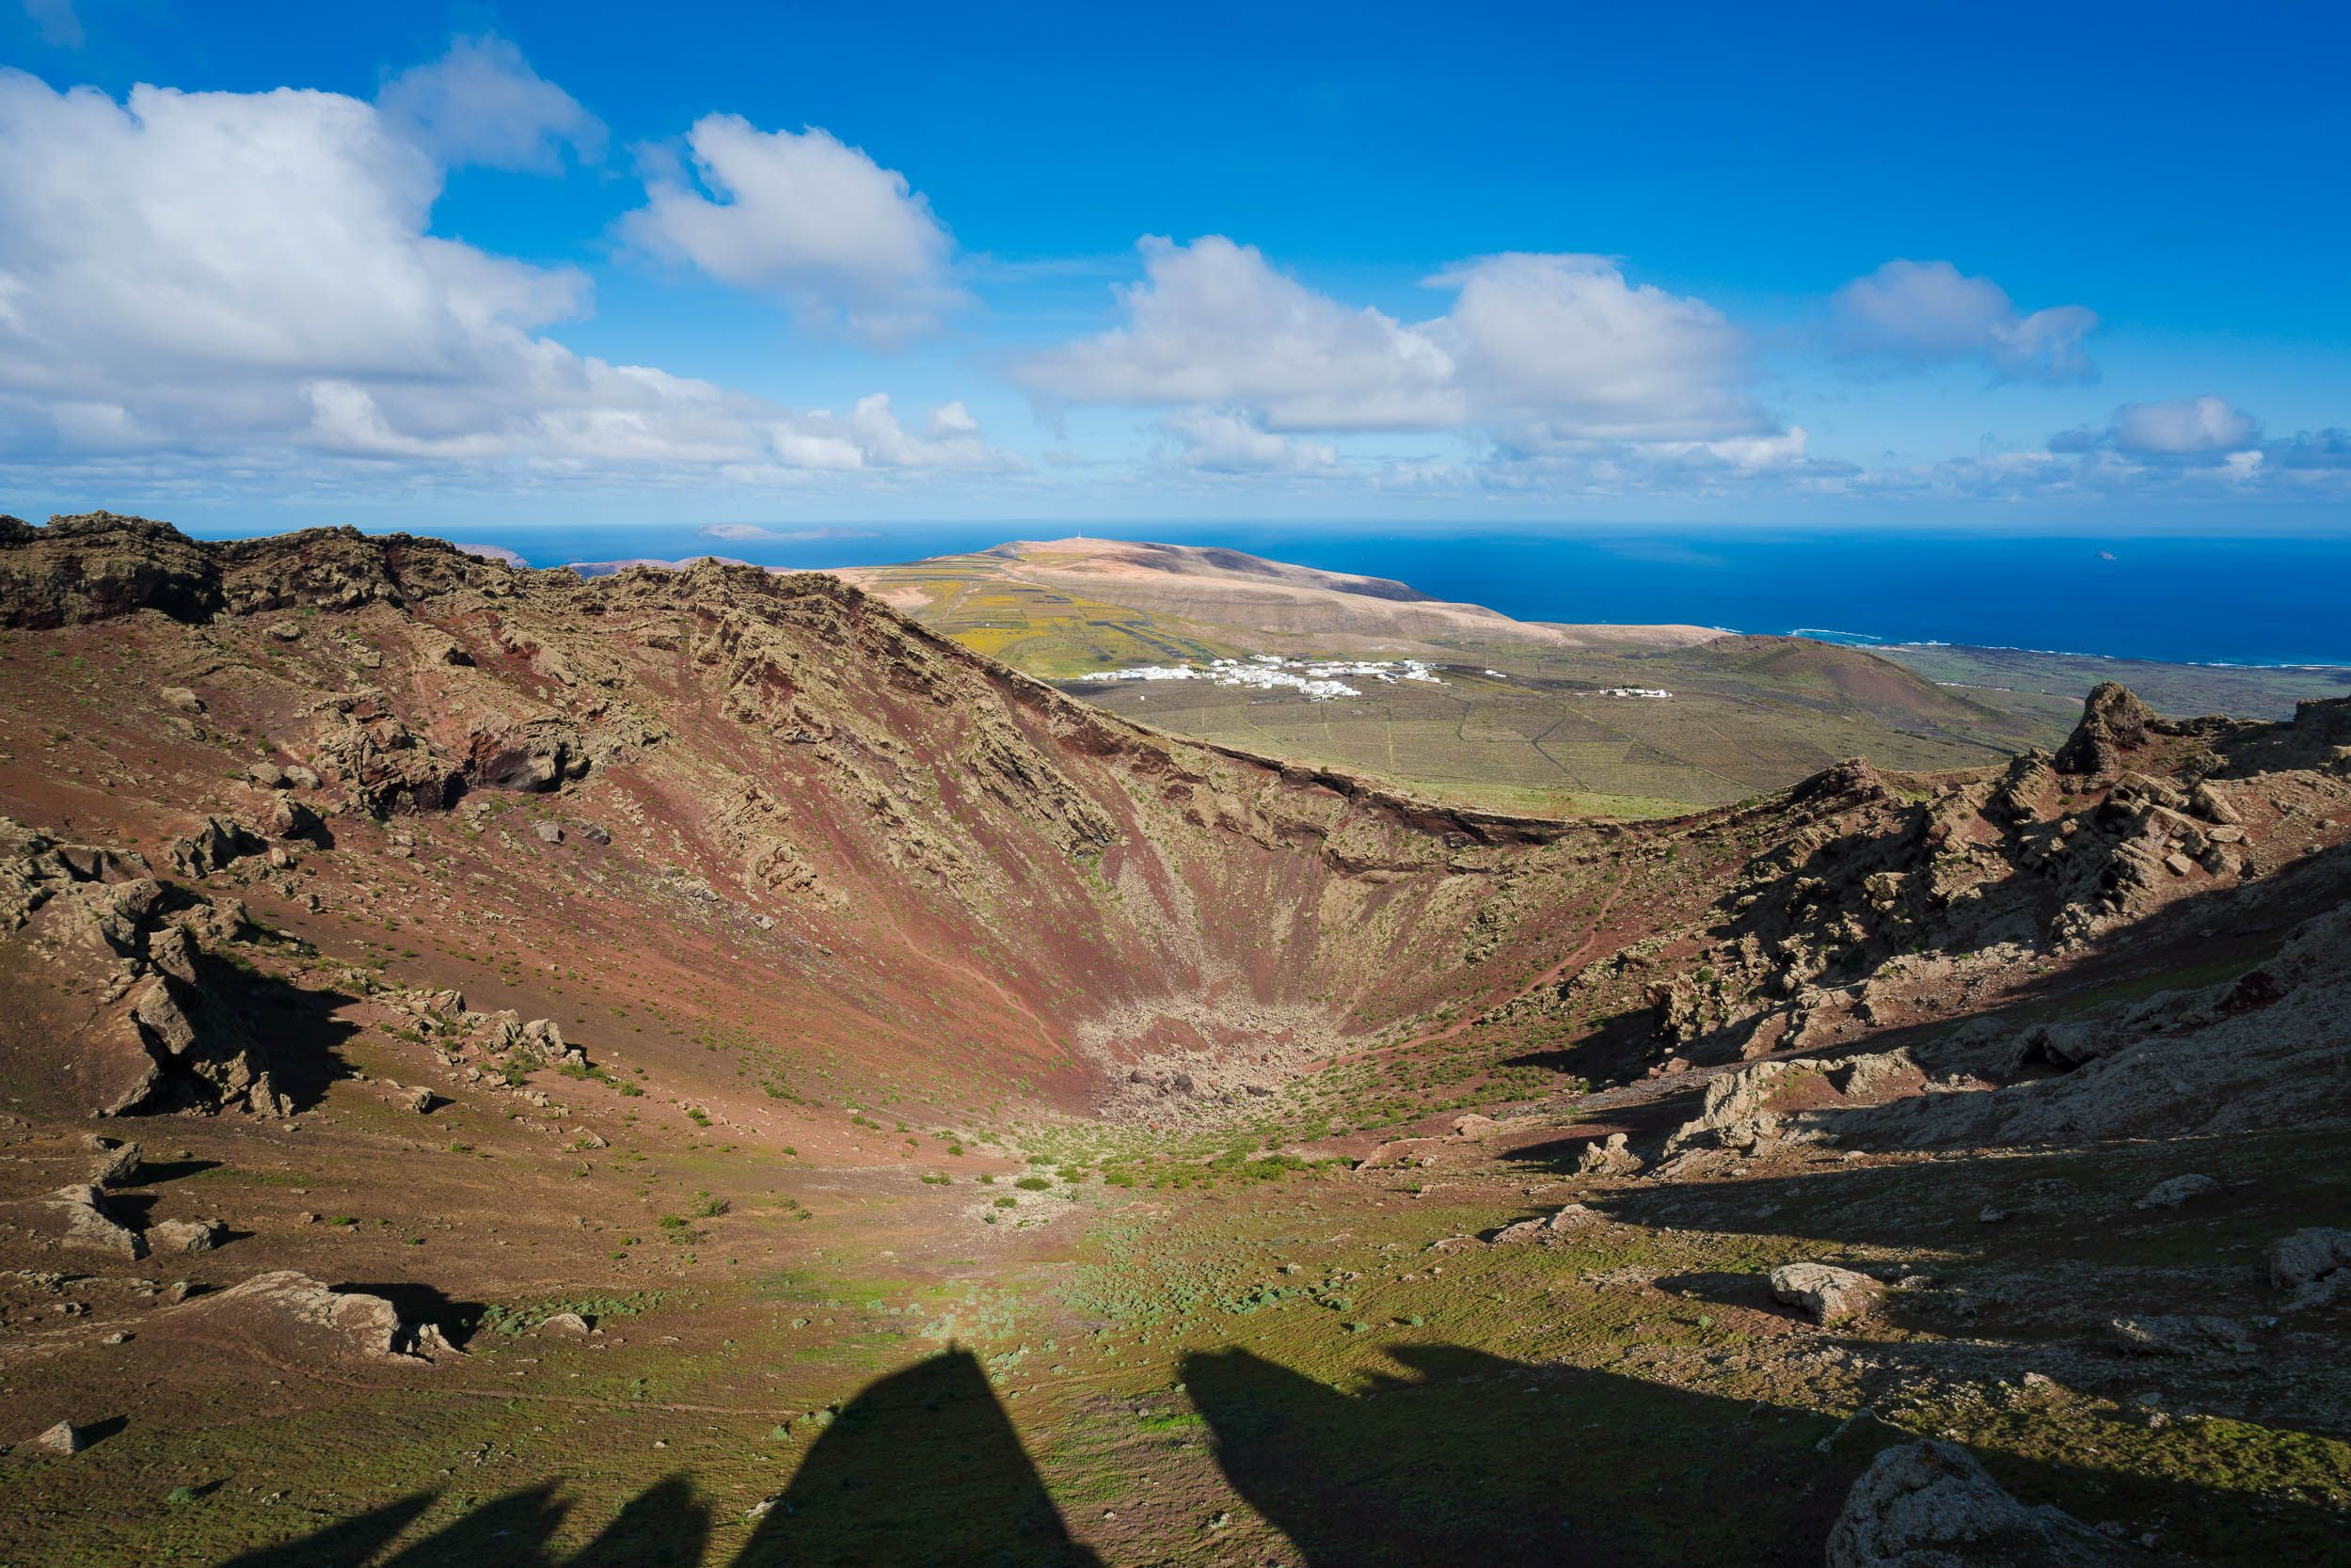 Lanzarote Is A Volcanic Island With A Landscape That Changes Colour At Every Step Lanzarote Isla De Lanzarote Turismo